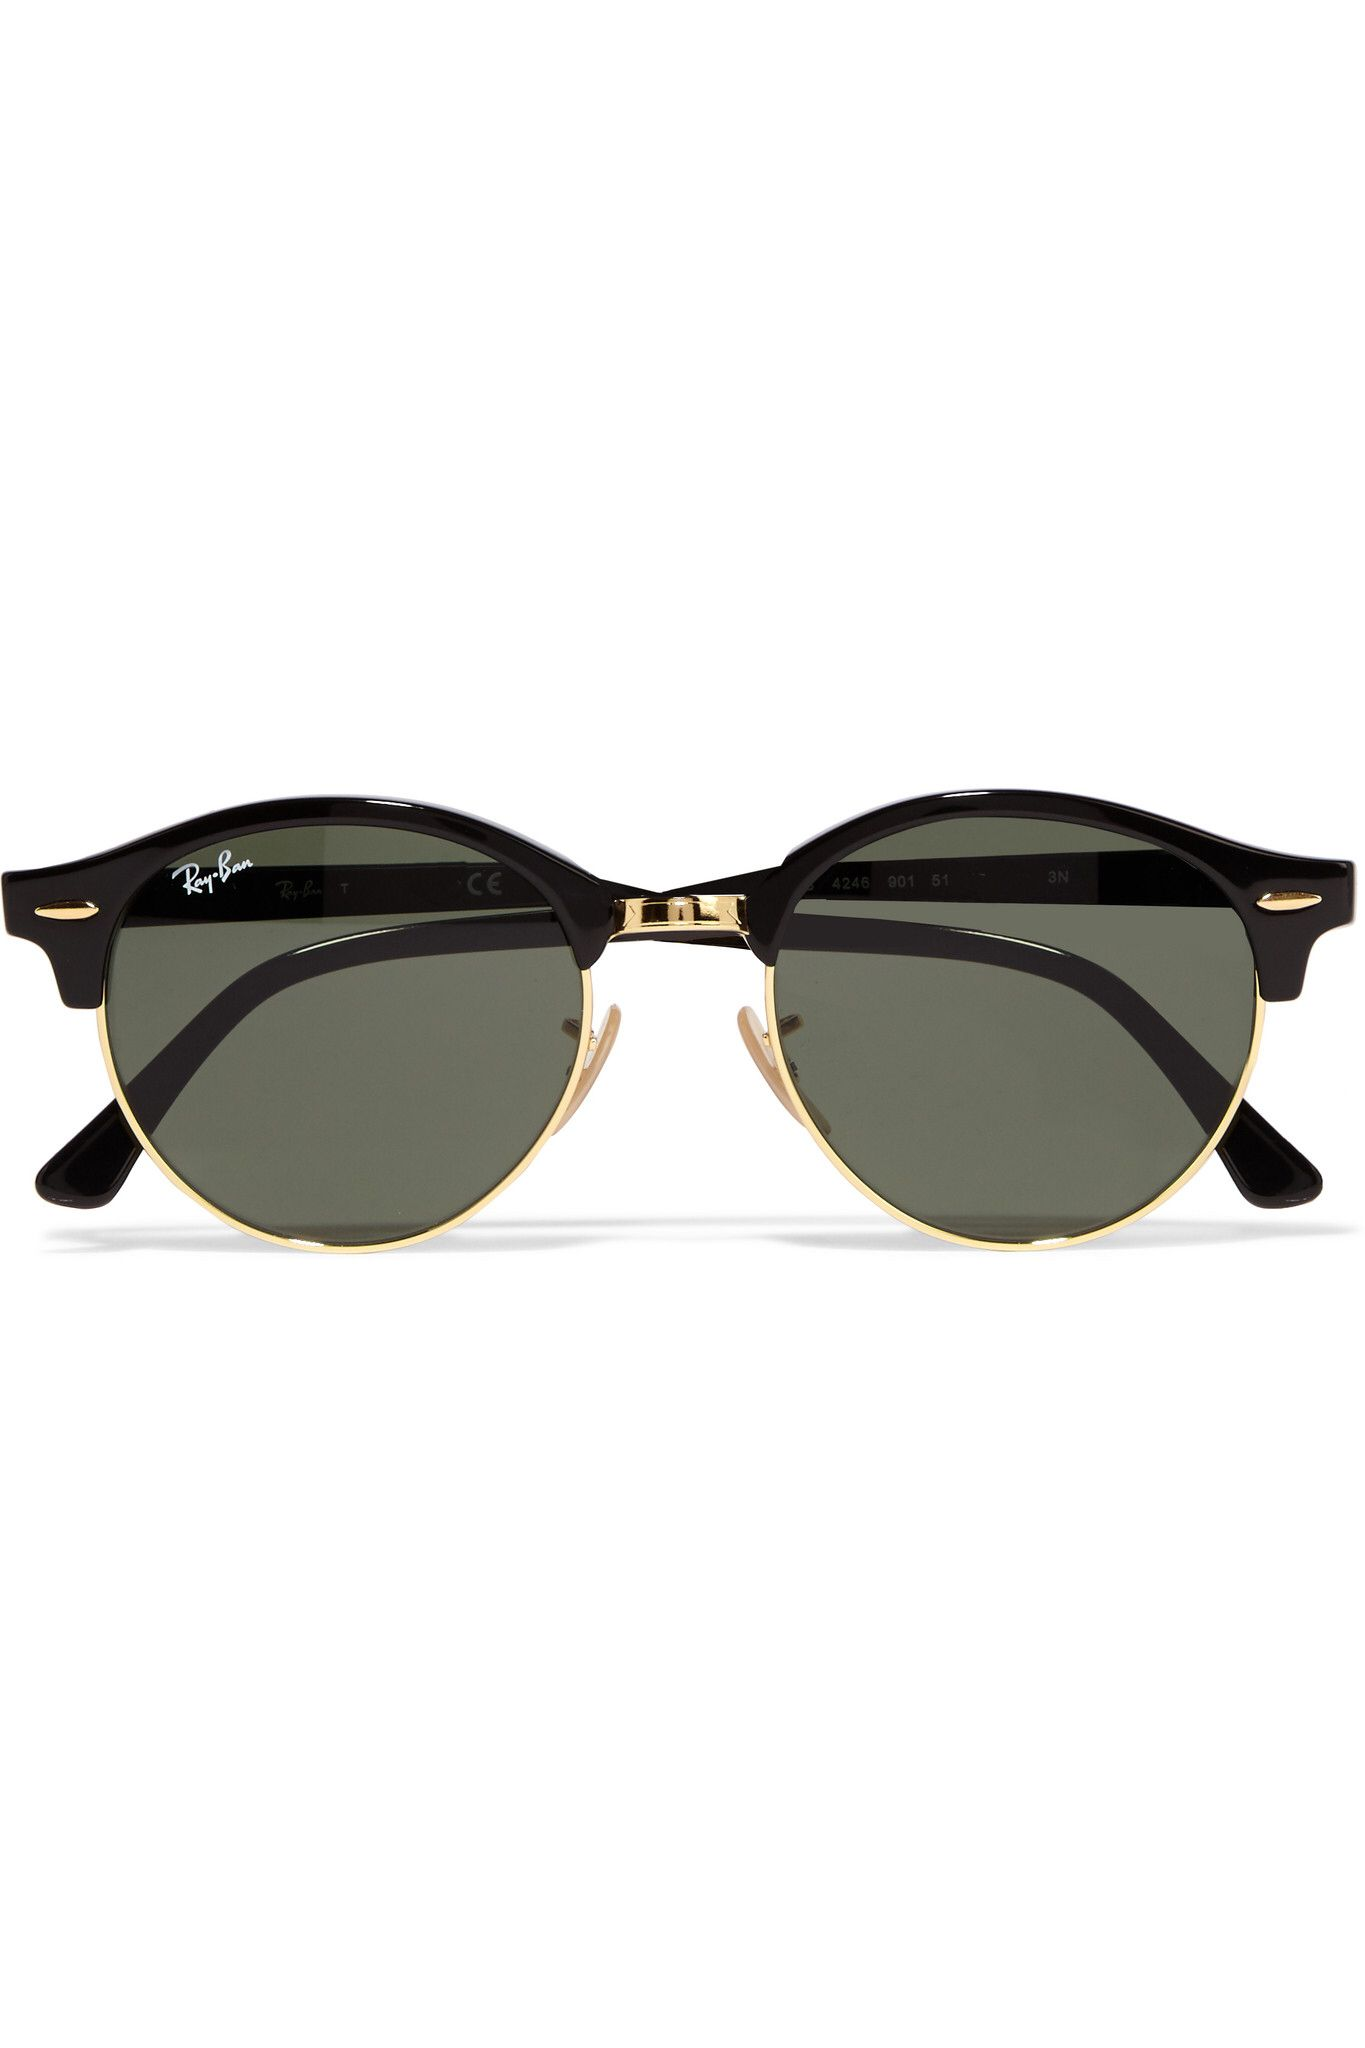 2698cf5cbd32 ... sweden ray ban sunglasses pinterest leather case spring summer and gold  cb411 3672b